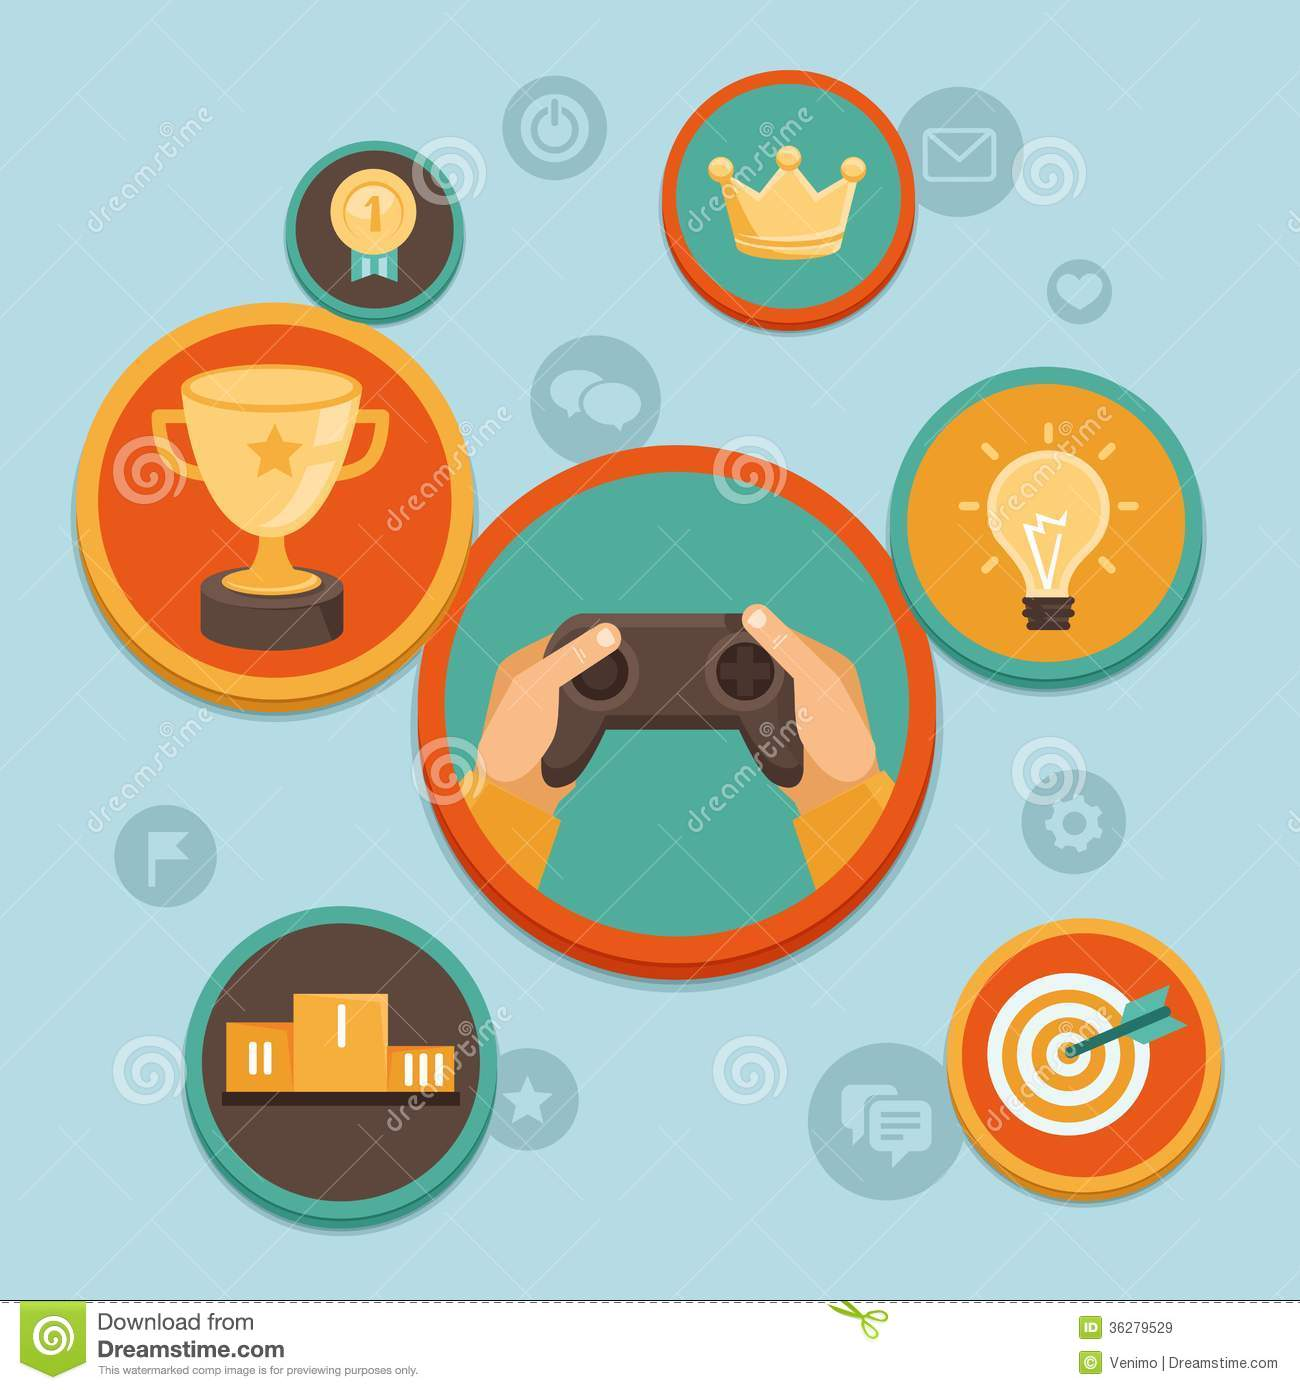 How to Align Gamification with Business Objectives